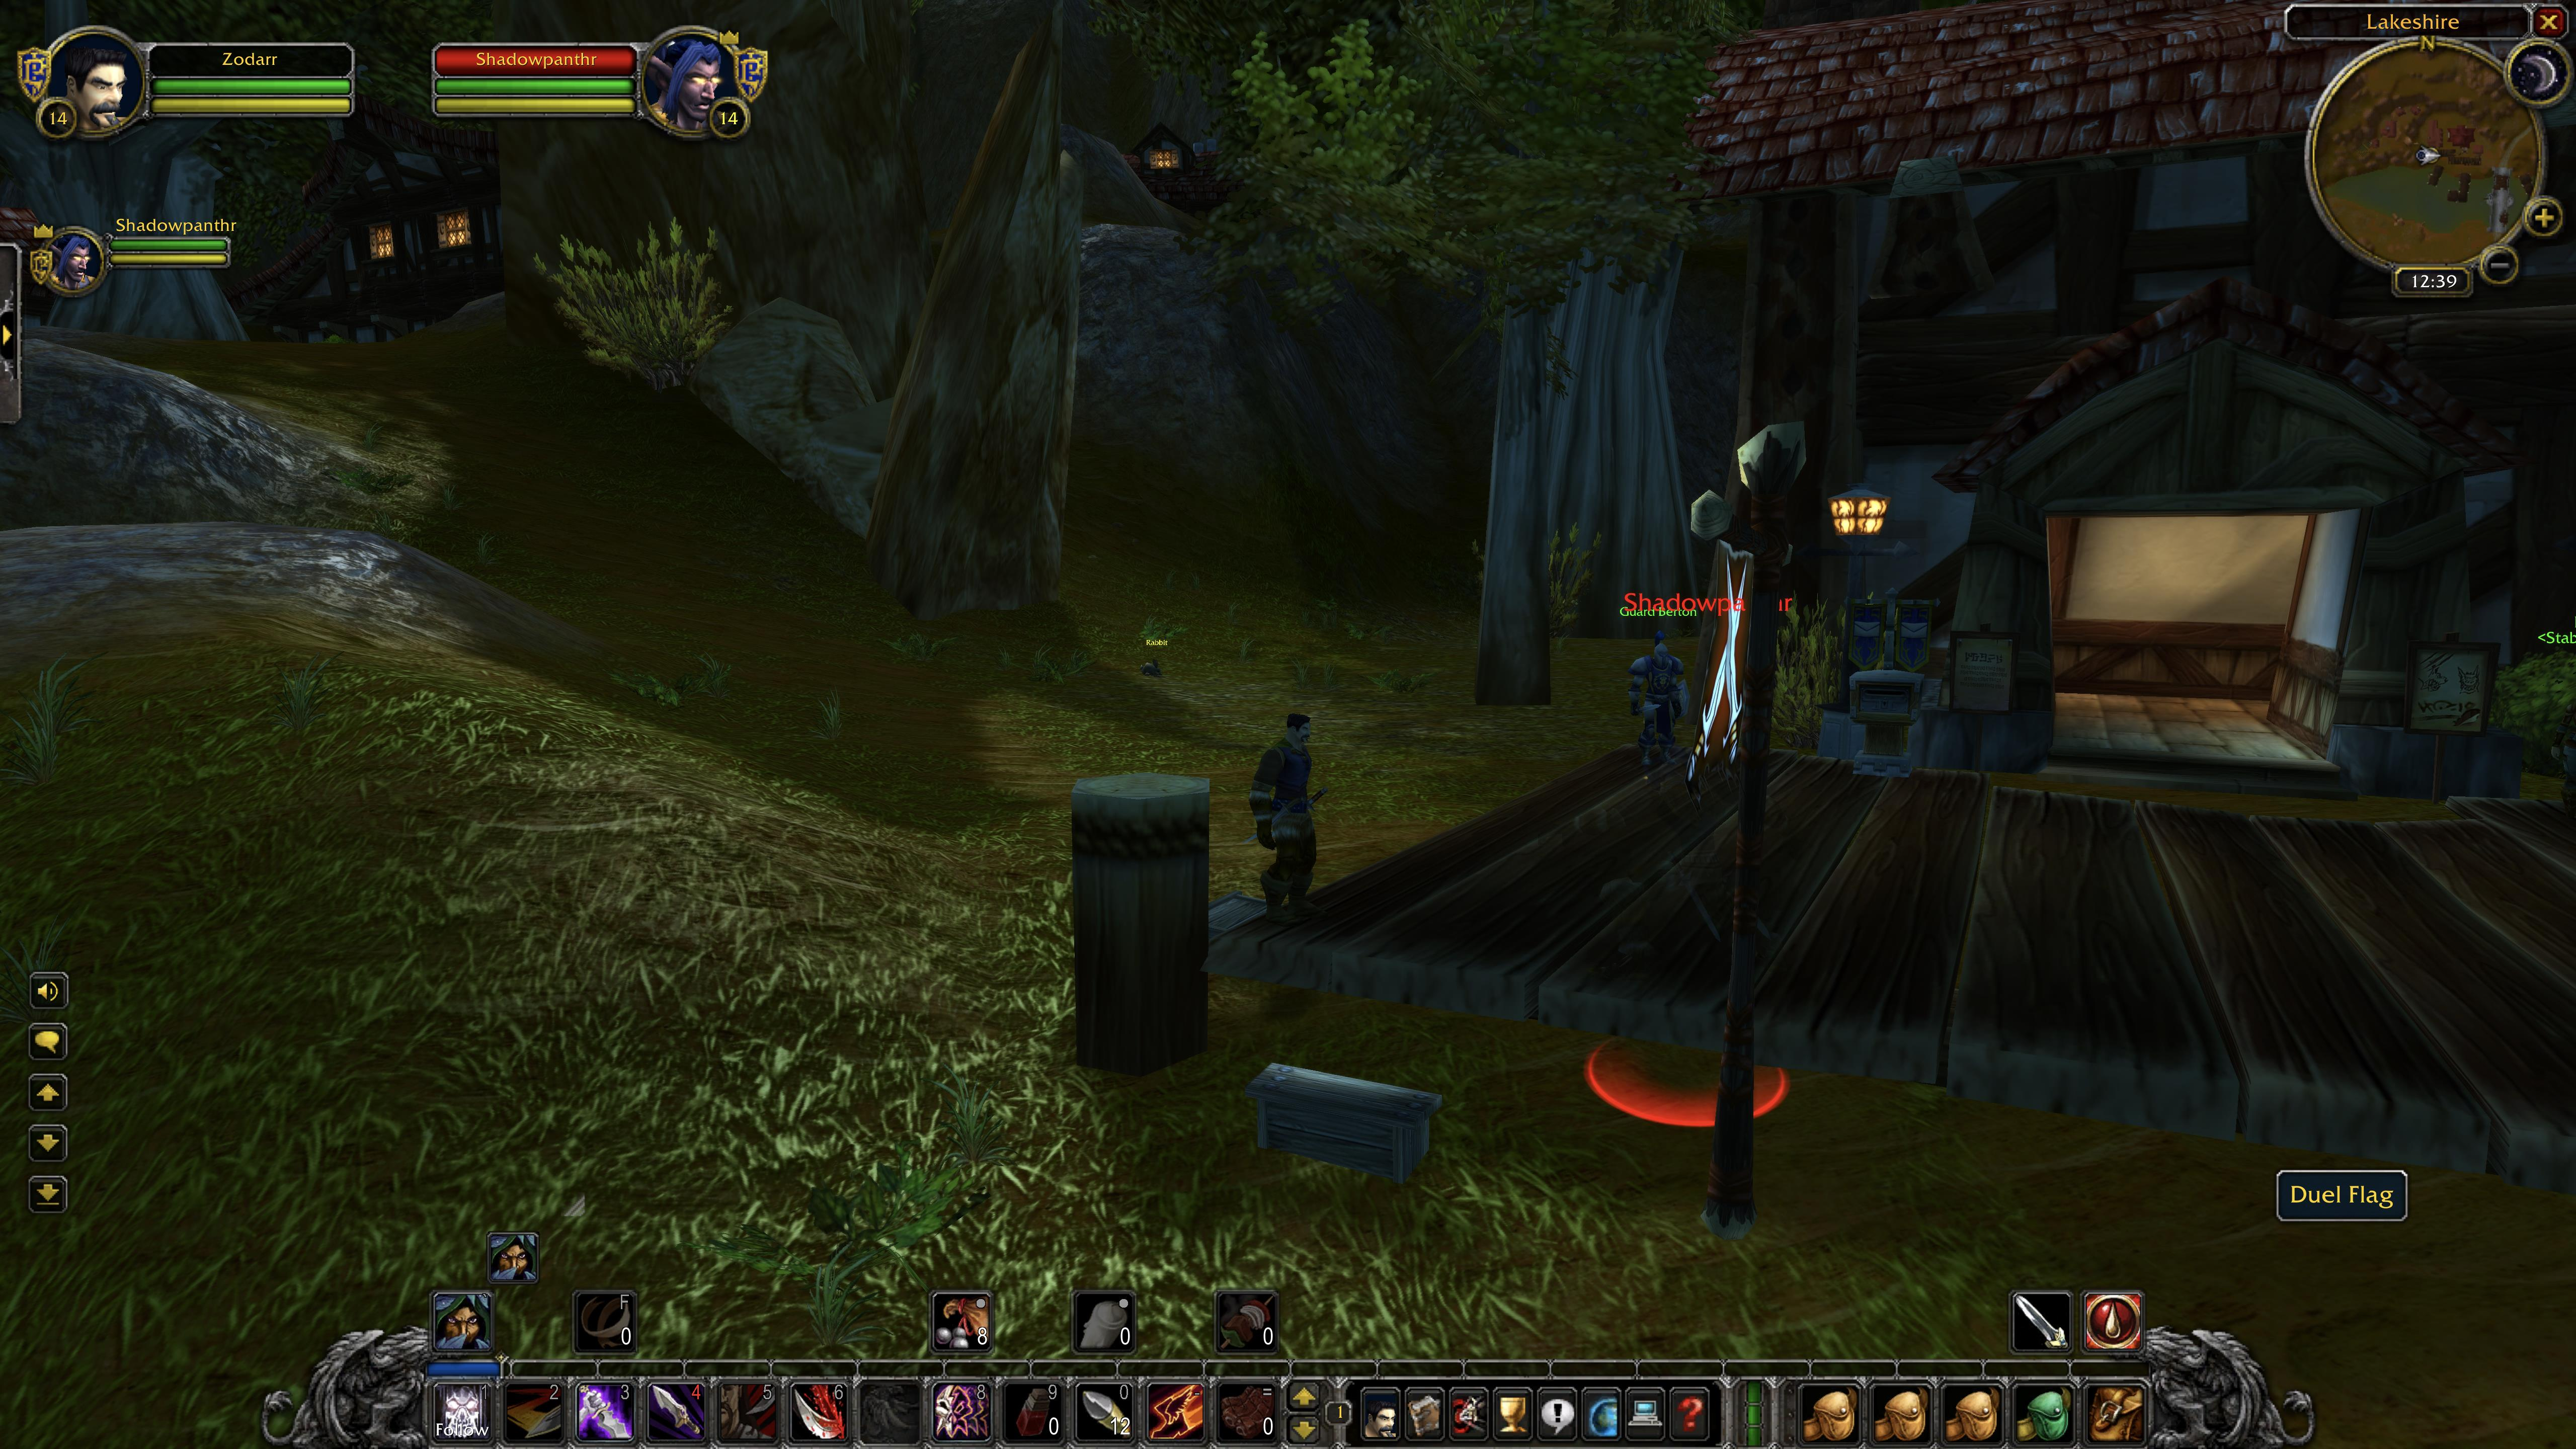 Night Elf Stealth - 4 MoD